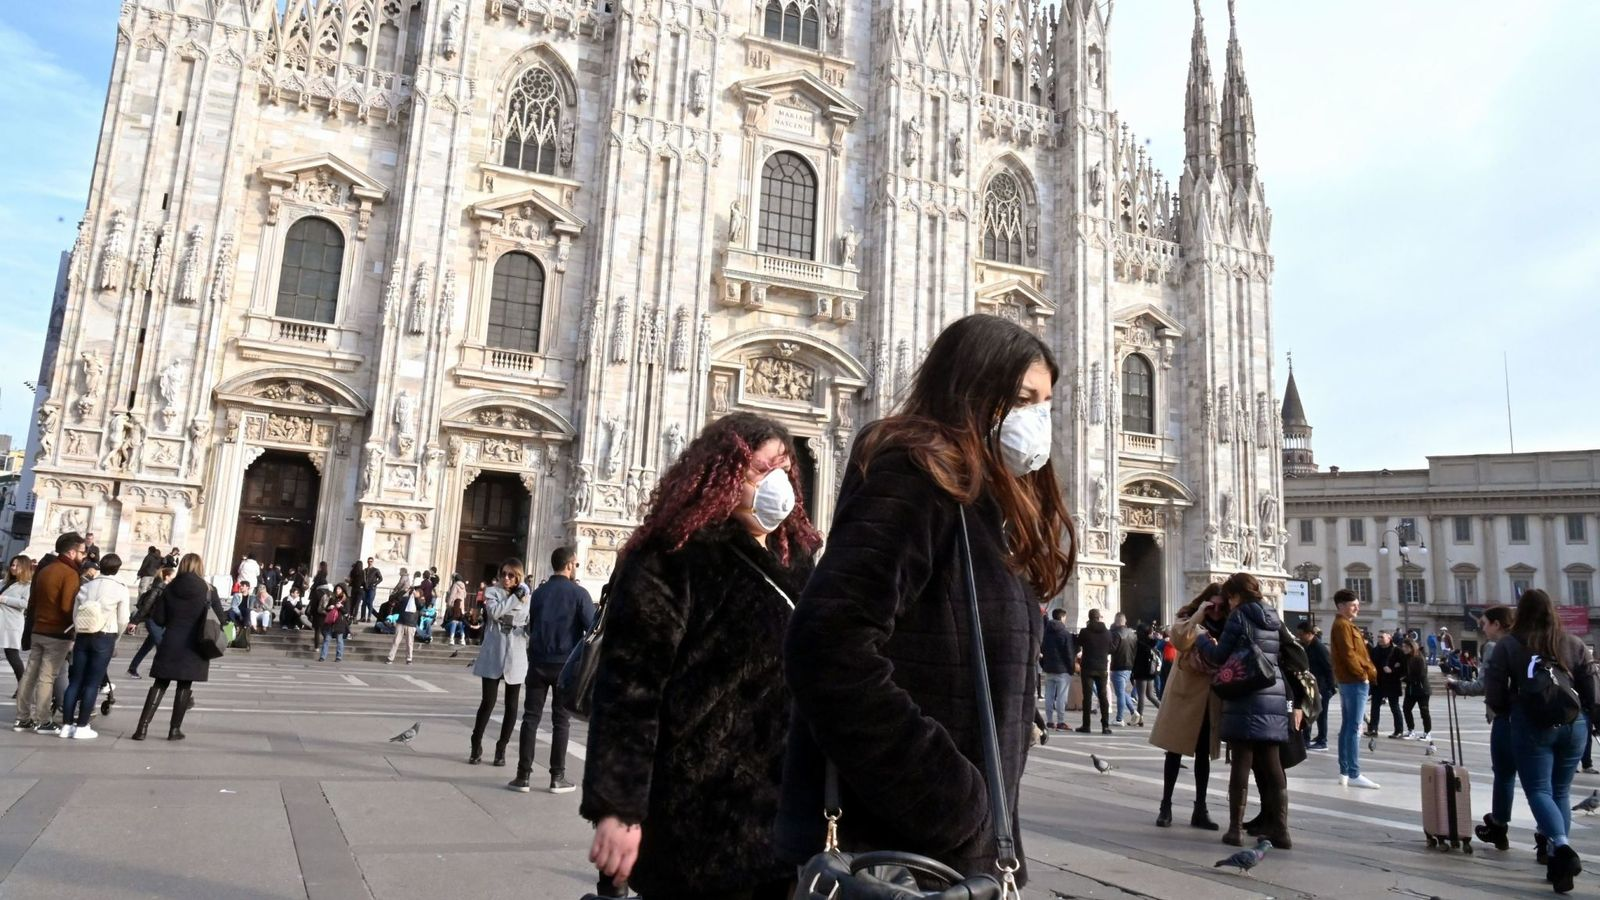 Coronavirus: Italy closes all schools and colleges as deaths rise. Italy is closing all schools and colleges with an end goal to stop the spread